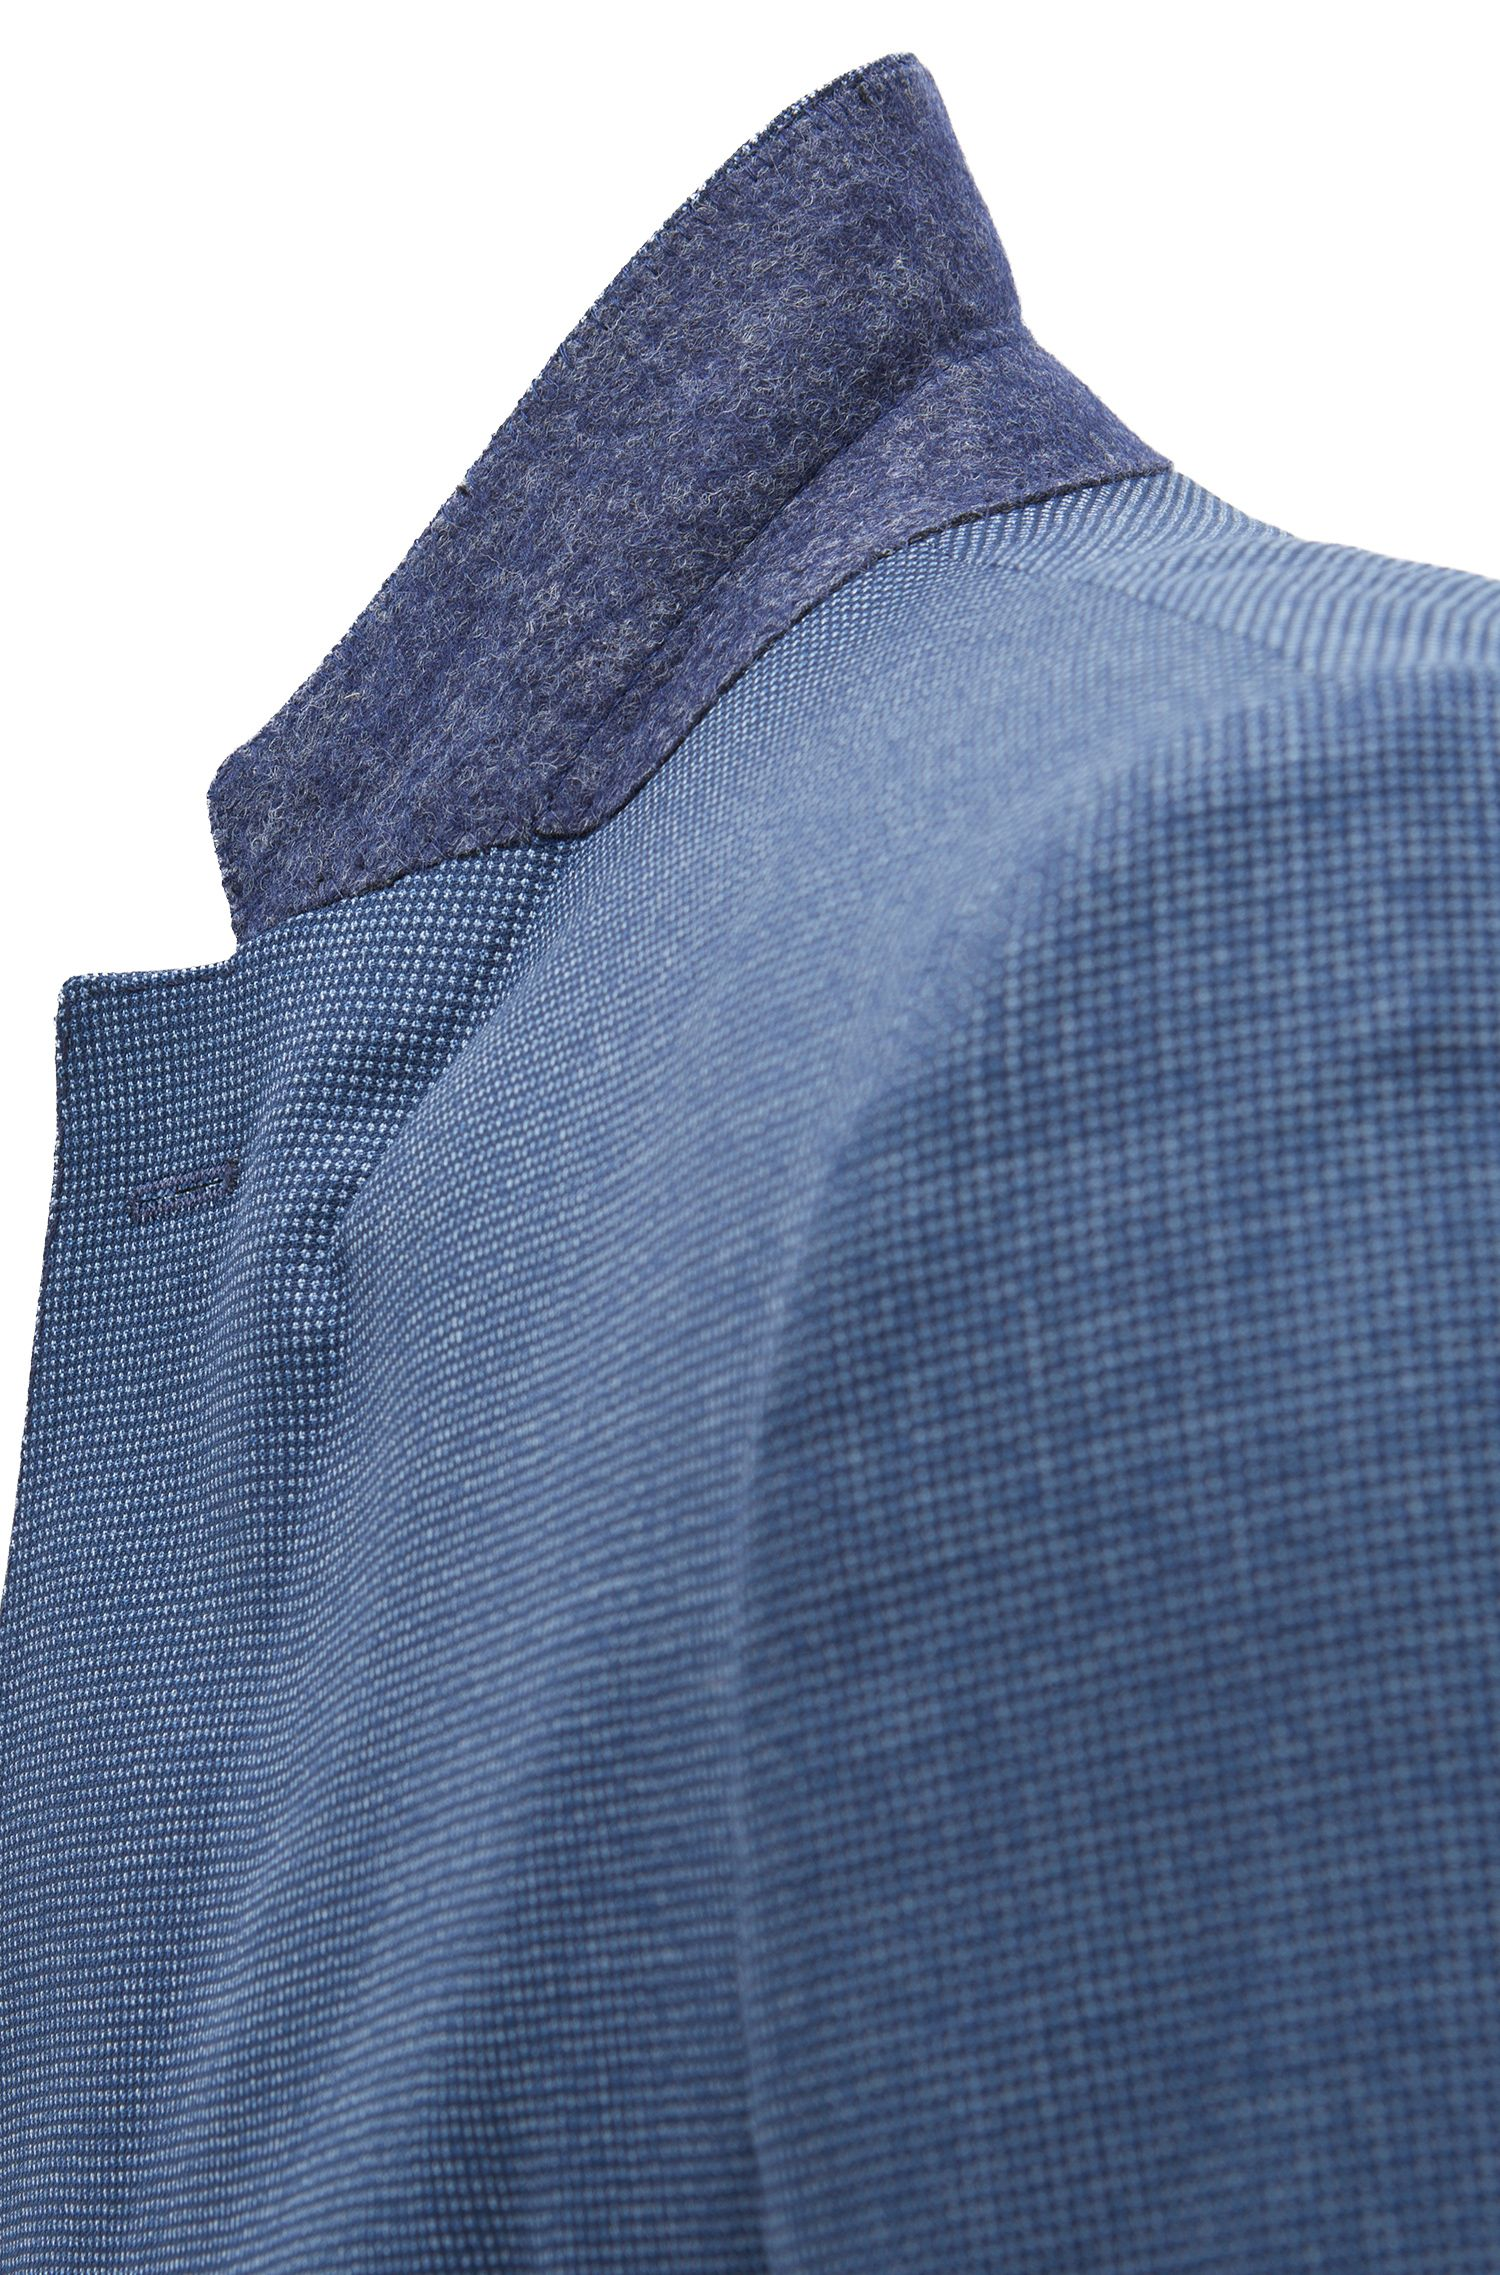 Virgin Wool Suit, Slim Fit | Novan/Ben, Open Blue